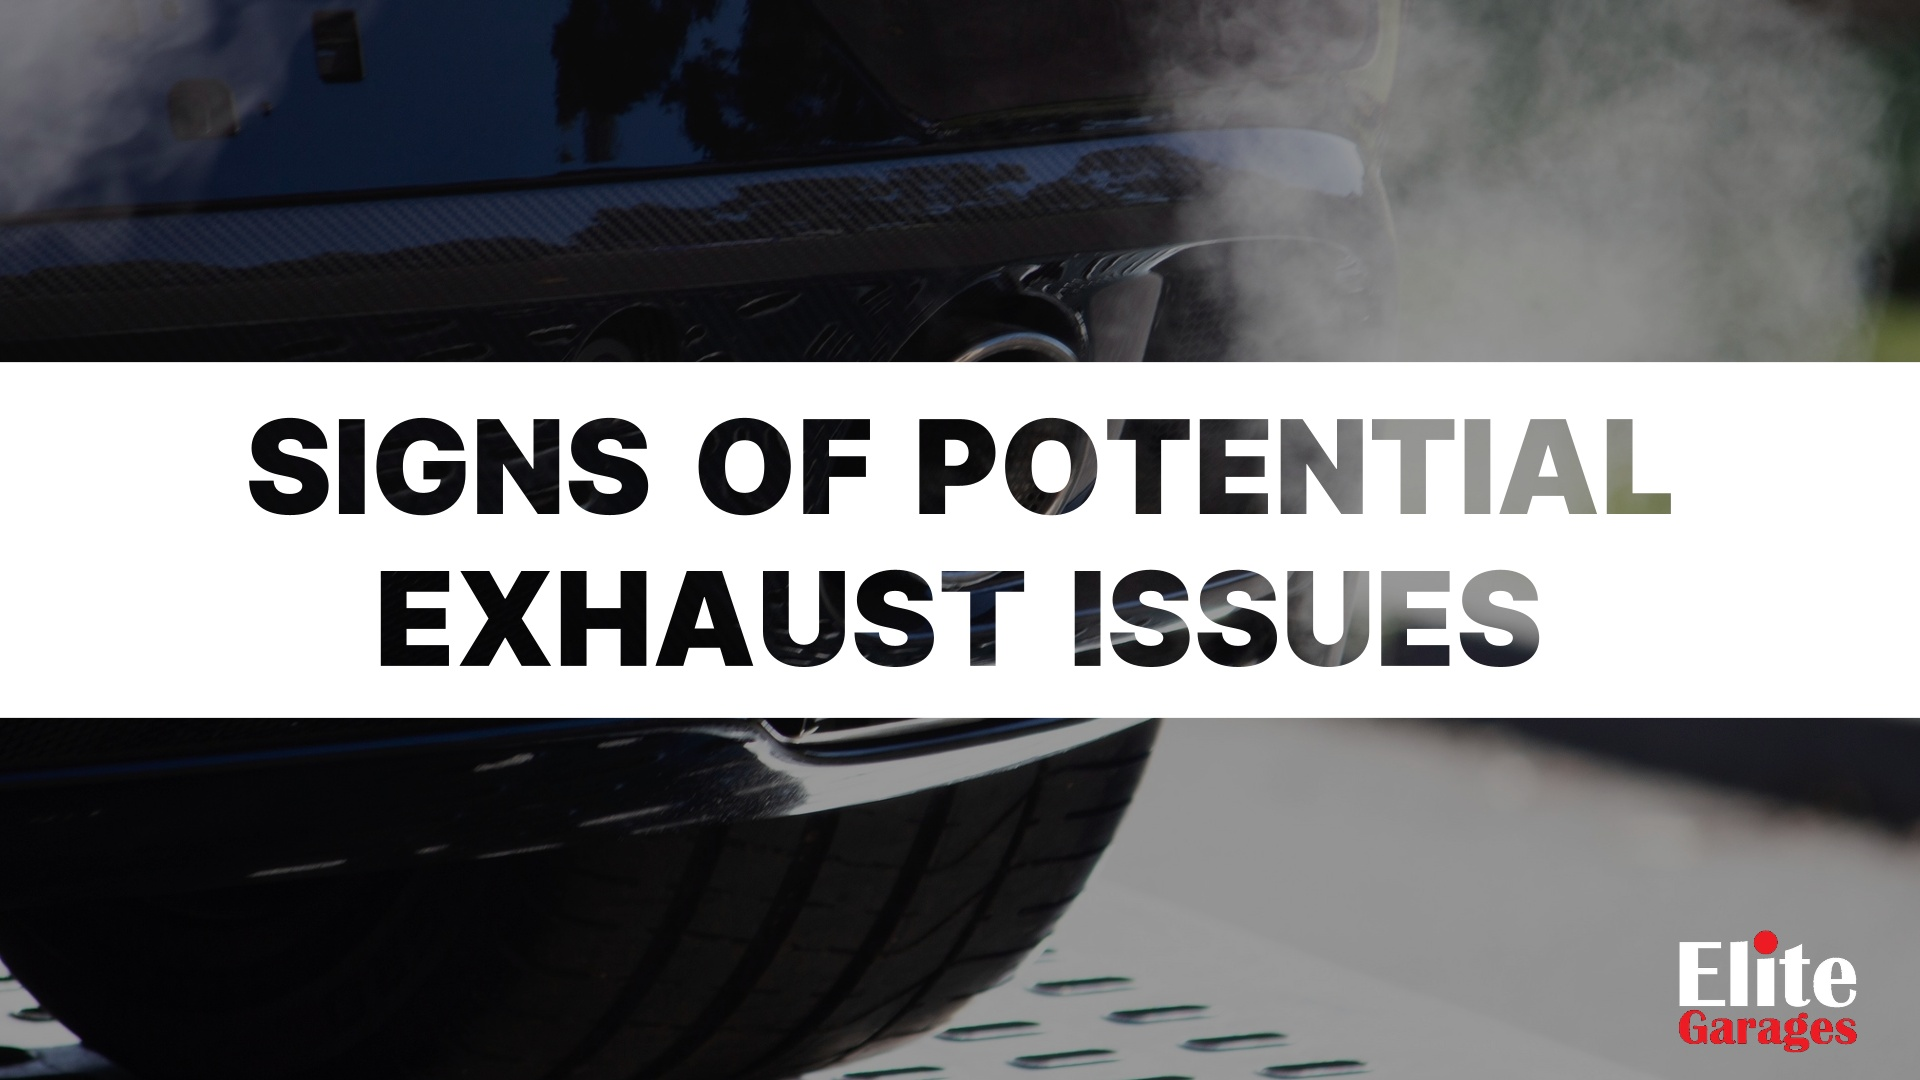 Signs And Symptoms Of Potential Exhaust Issues LANDSCAPE